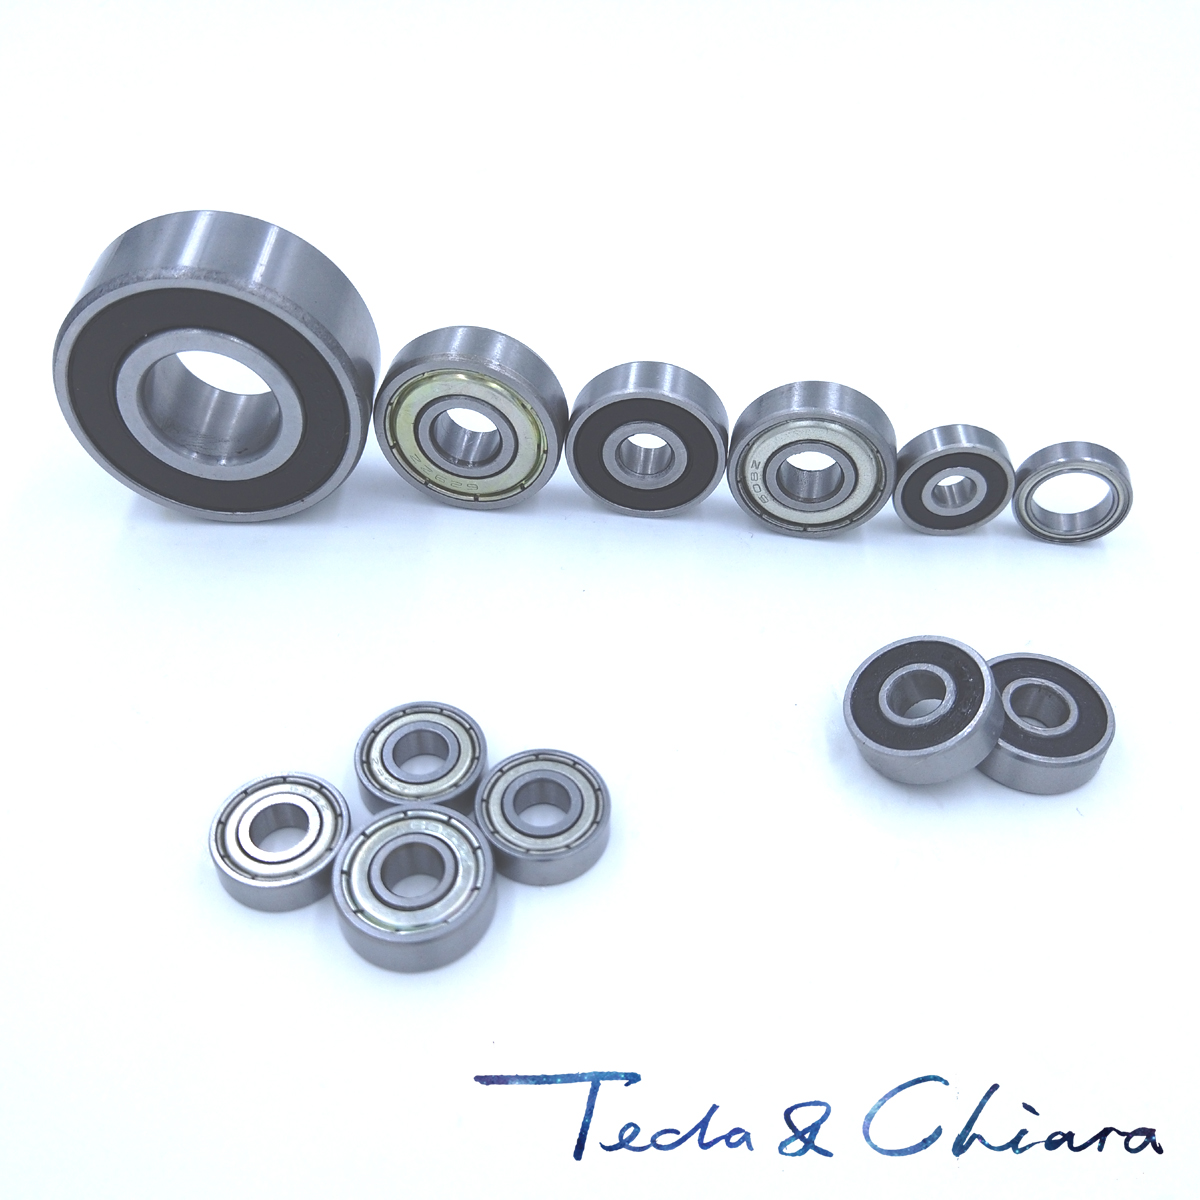 6700 6700ZZ 6700RS 6700-2Z 6700Z 6700-2RS ZZ RS RZ 2RZ Deep Groove Ball Bearings 10 X 15 X 4mm